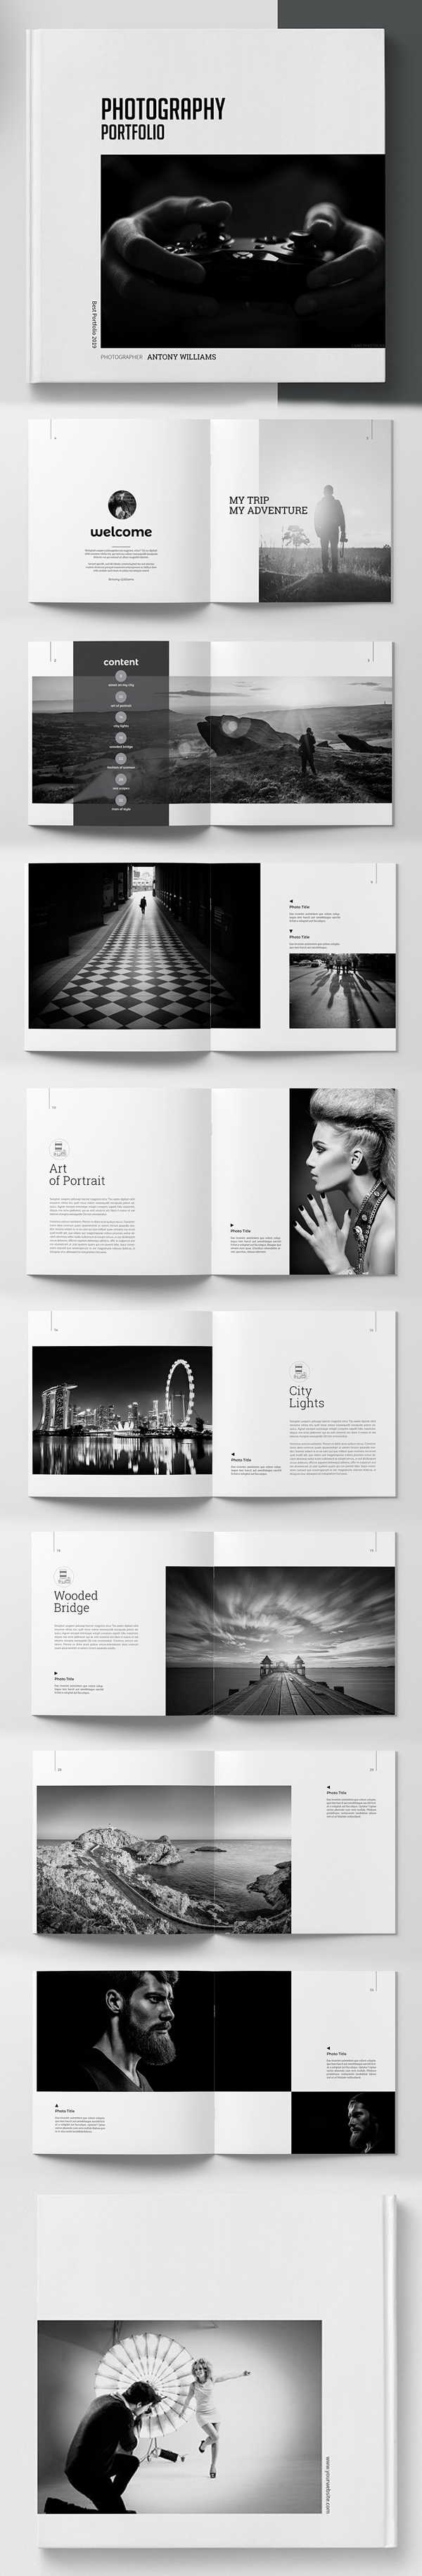 100 Professional Corporate Brochure Templates - 39